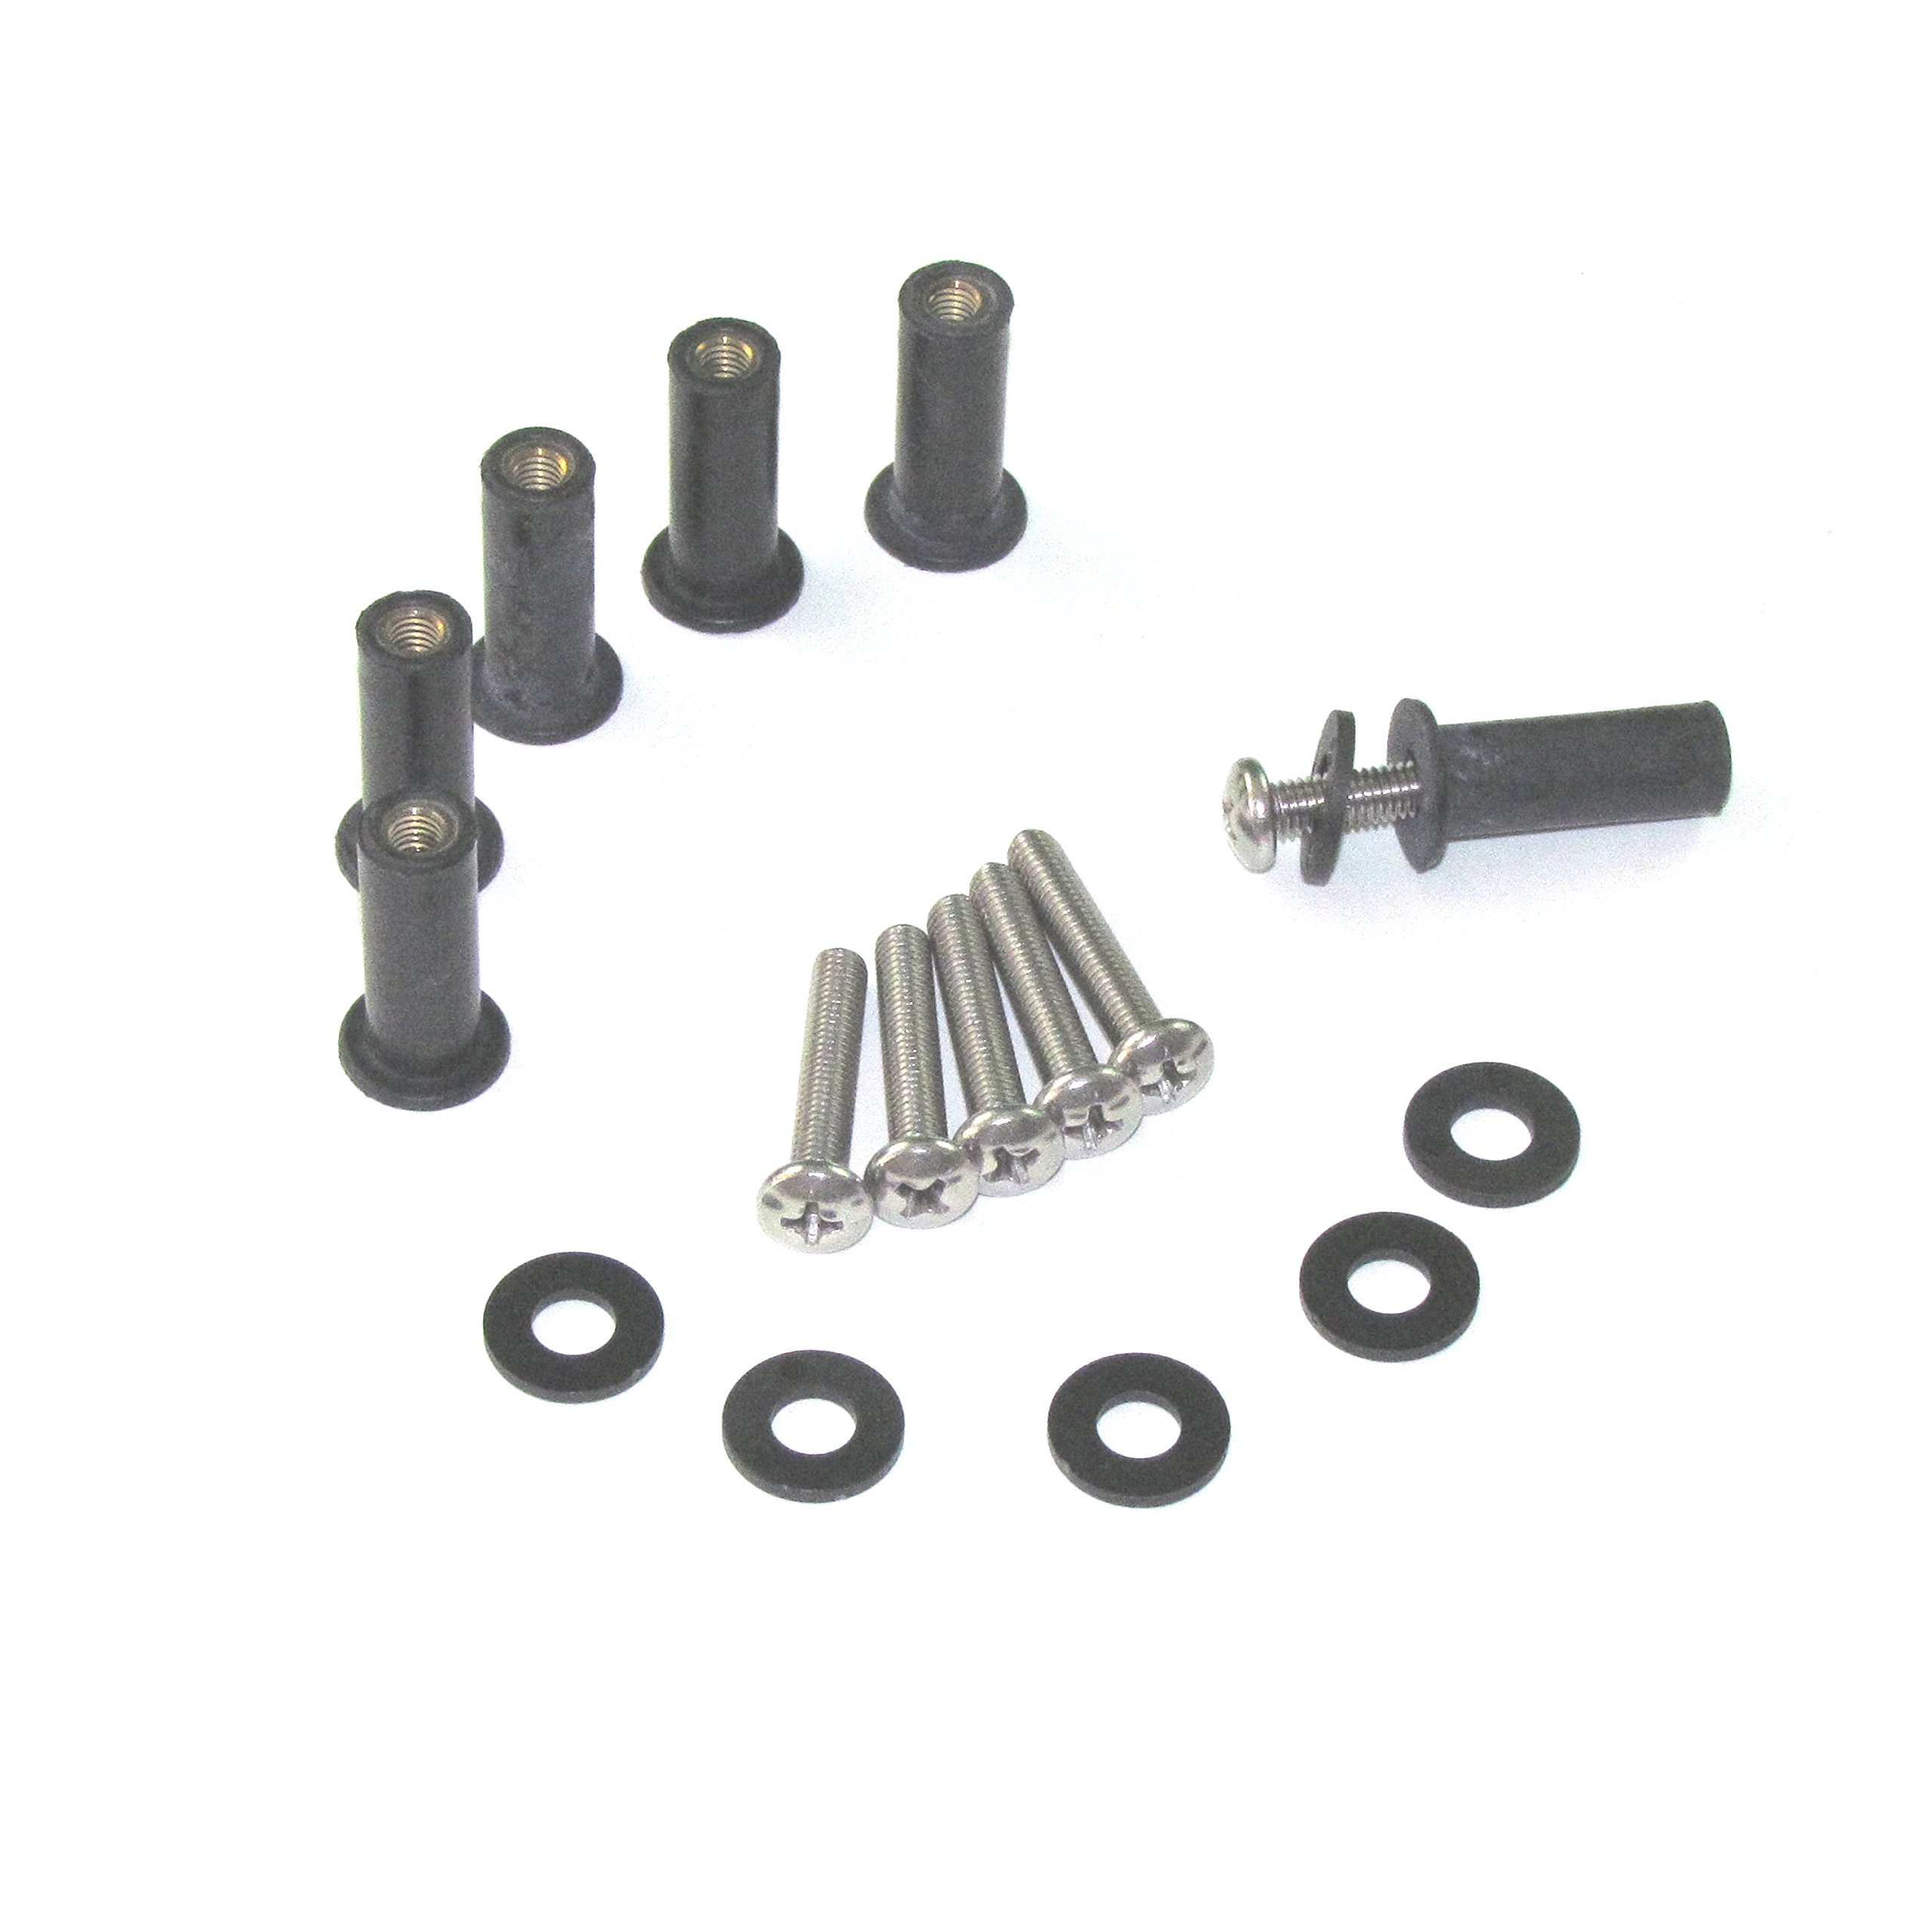 Bike Boltz Harley Road Glide Upgraded Windscreen Bolt Kit - Includes All Hardware for Windscreen Installation Multiple Colors and Quantities Available (6 Sets, Silver Stainless Steel)